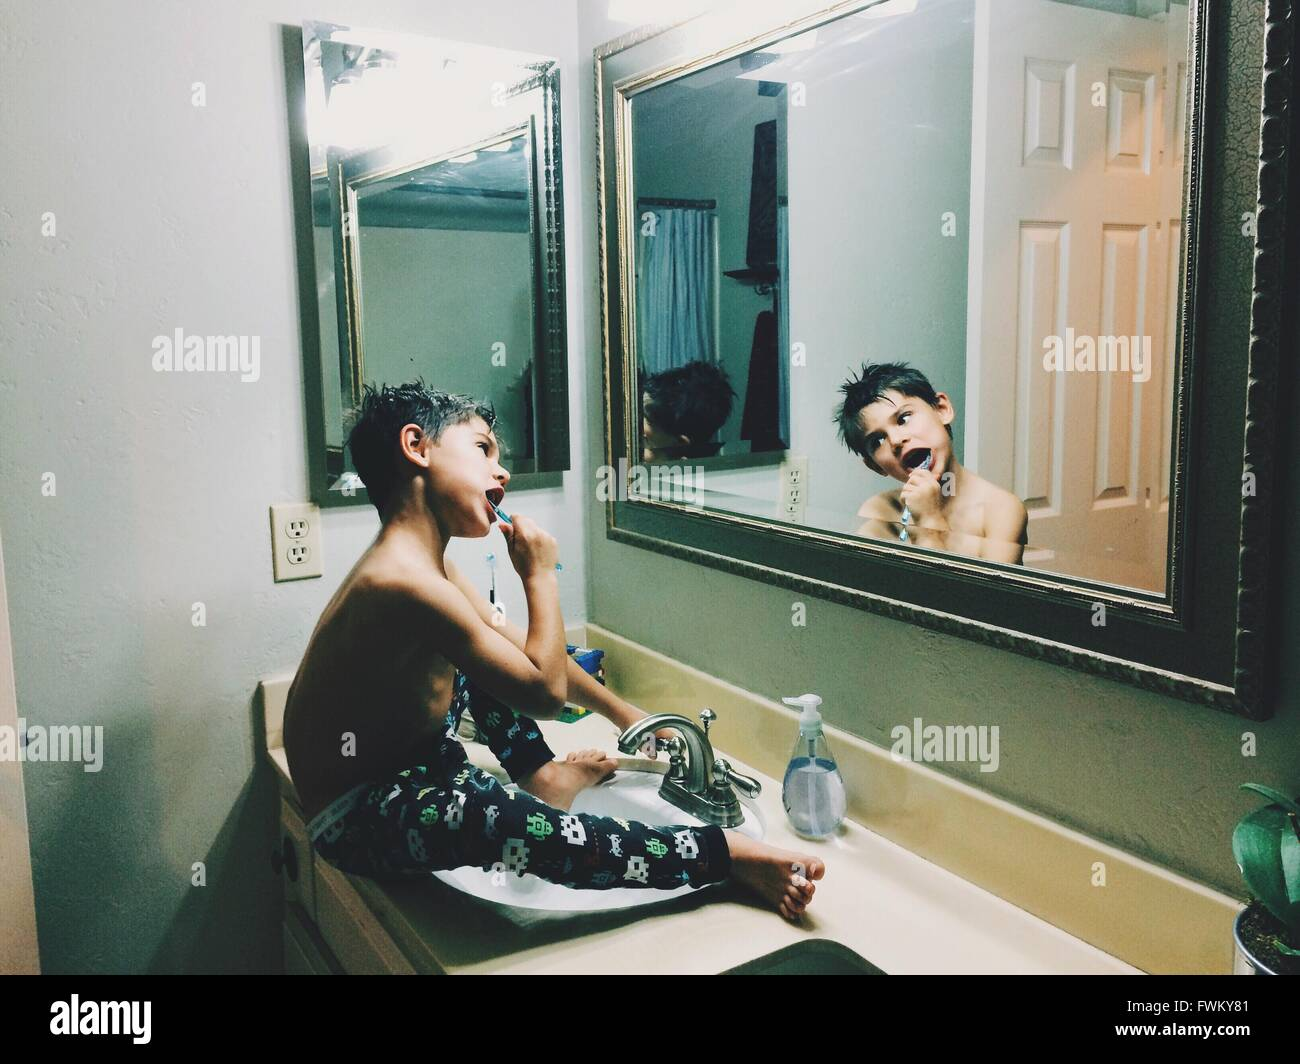 Cute Shirtless Boy Brushing Teeth In Front Of Mirror While Sitting On Sink - Stock Image